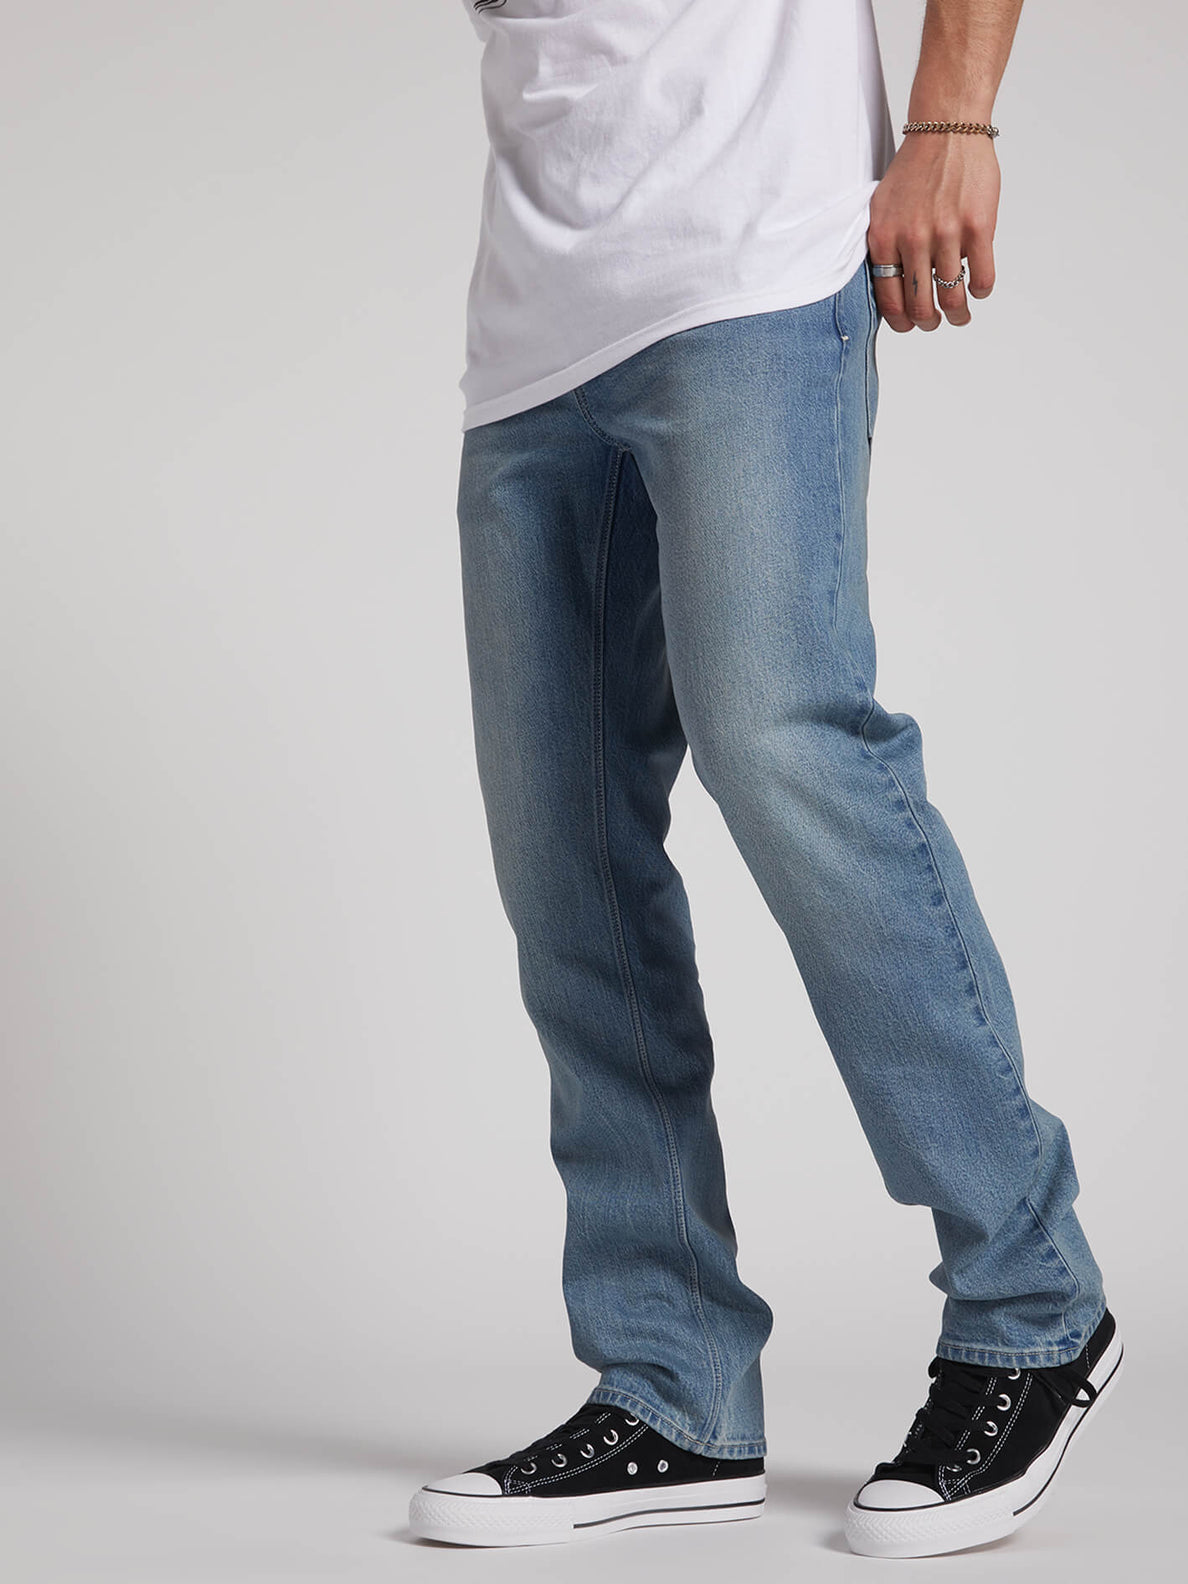 Solver Modern Fit Jeans - Wide Goods Light (A1931503_WGL) [5]